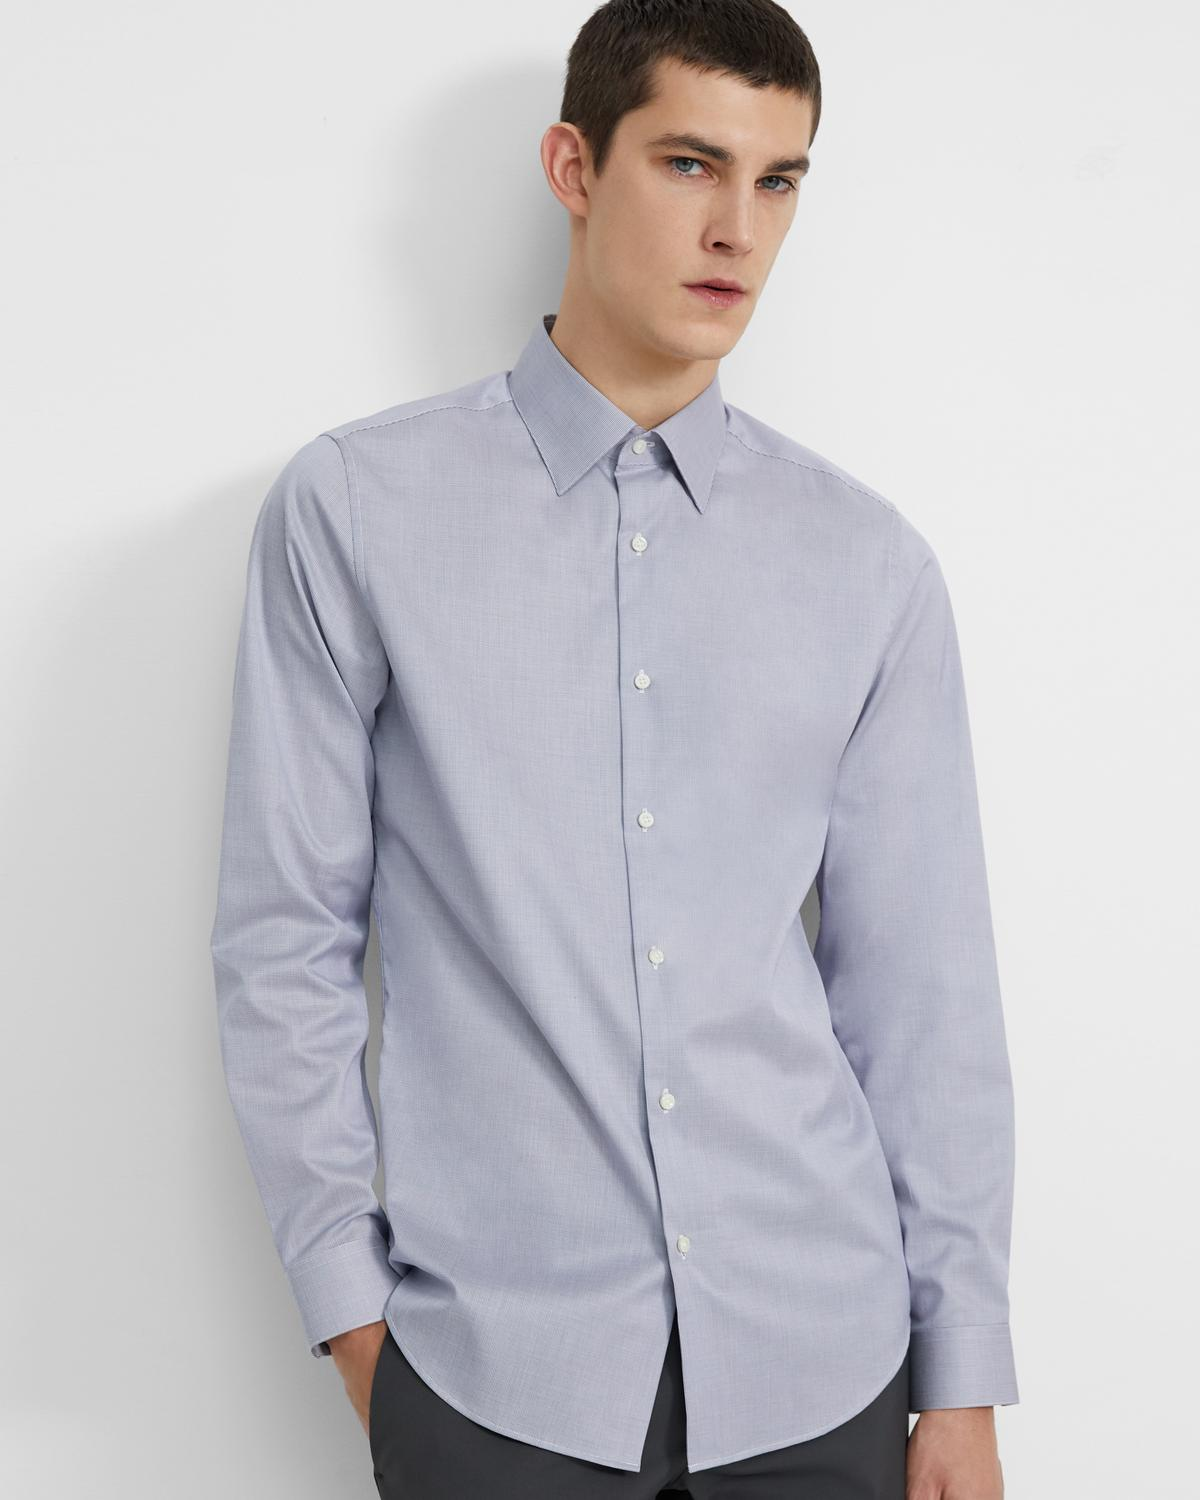 Cedrick Dress Shirt in Printed Cotton